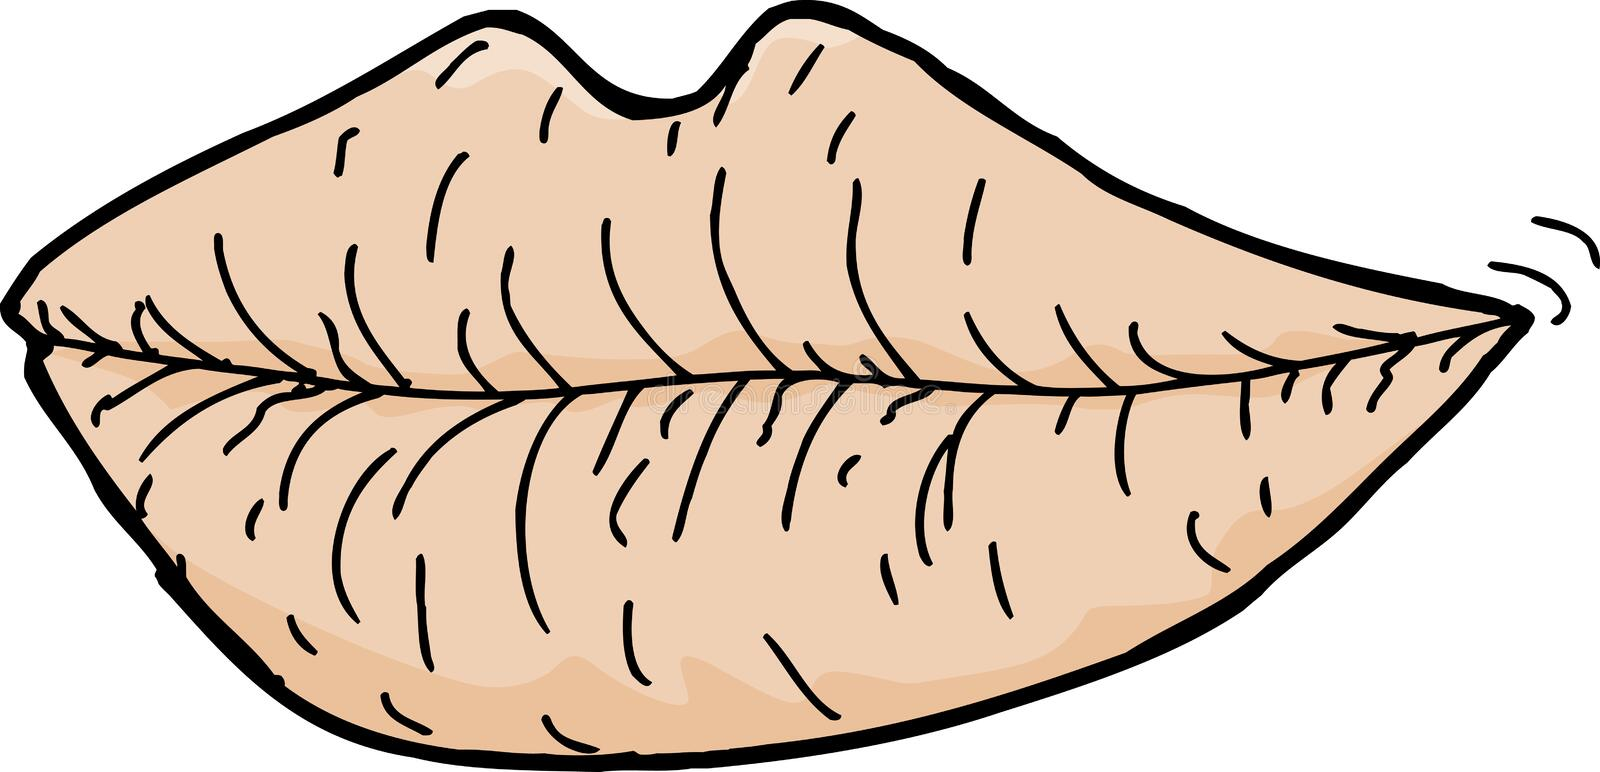 Chapped Lips. Cartoon of chapped lips on white background royalty free illustration